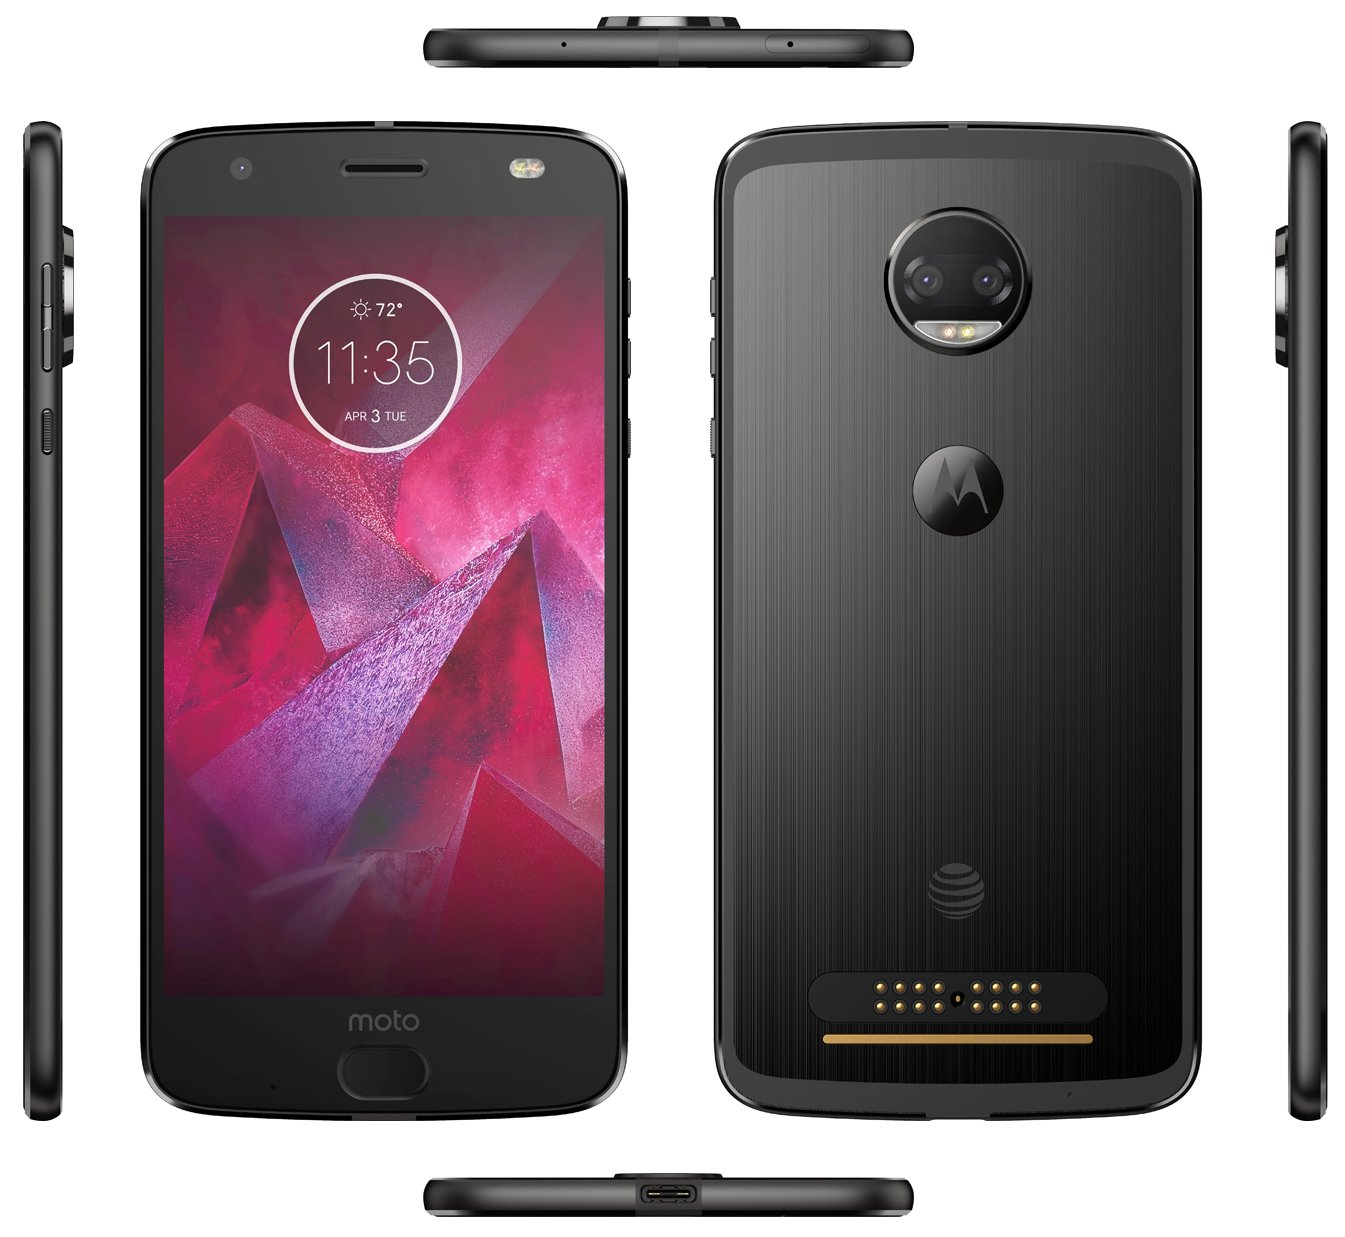 Motorola announces 360 degree camera 'Moto Mod' for $300